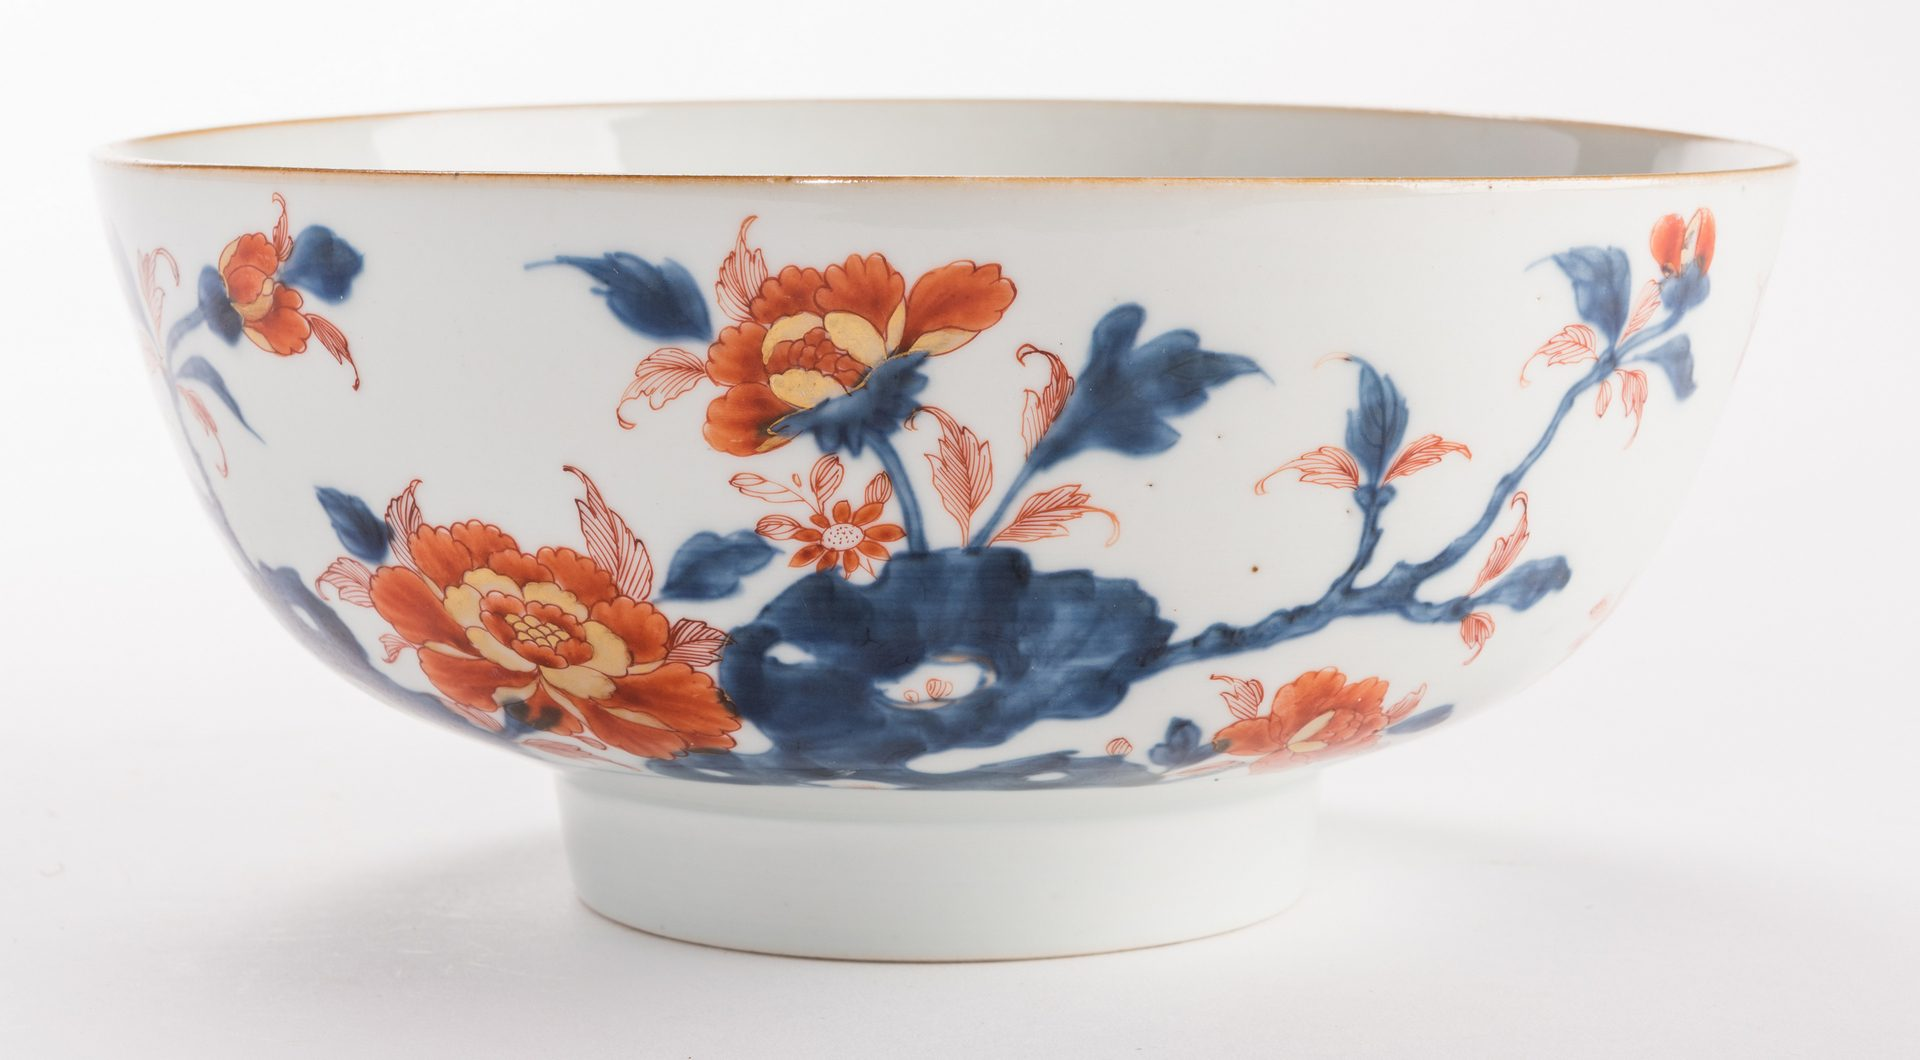 Lot 318: 2 large Chinese Imari Export Porcelain Footed Bowls, 18th c.